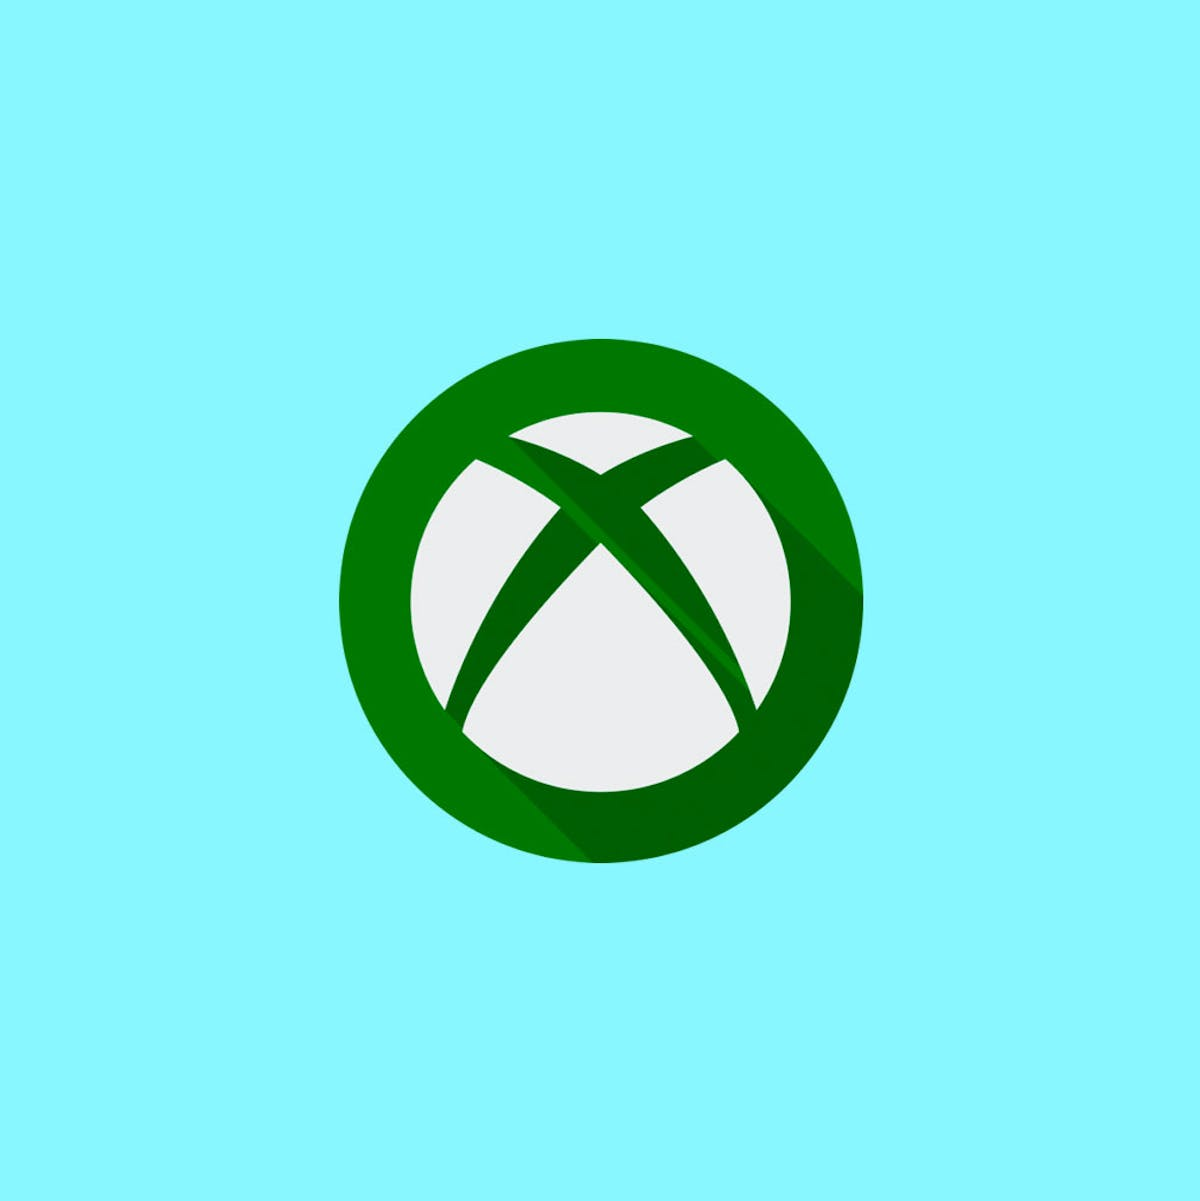 New Xbox: Microsoft Project Scarlett Takes a Surprising but Beneficial Turn